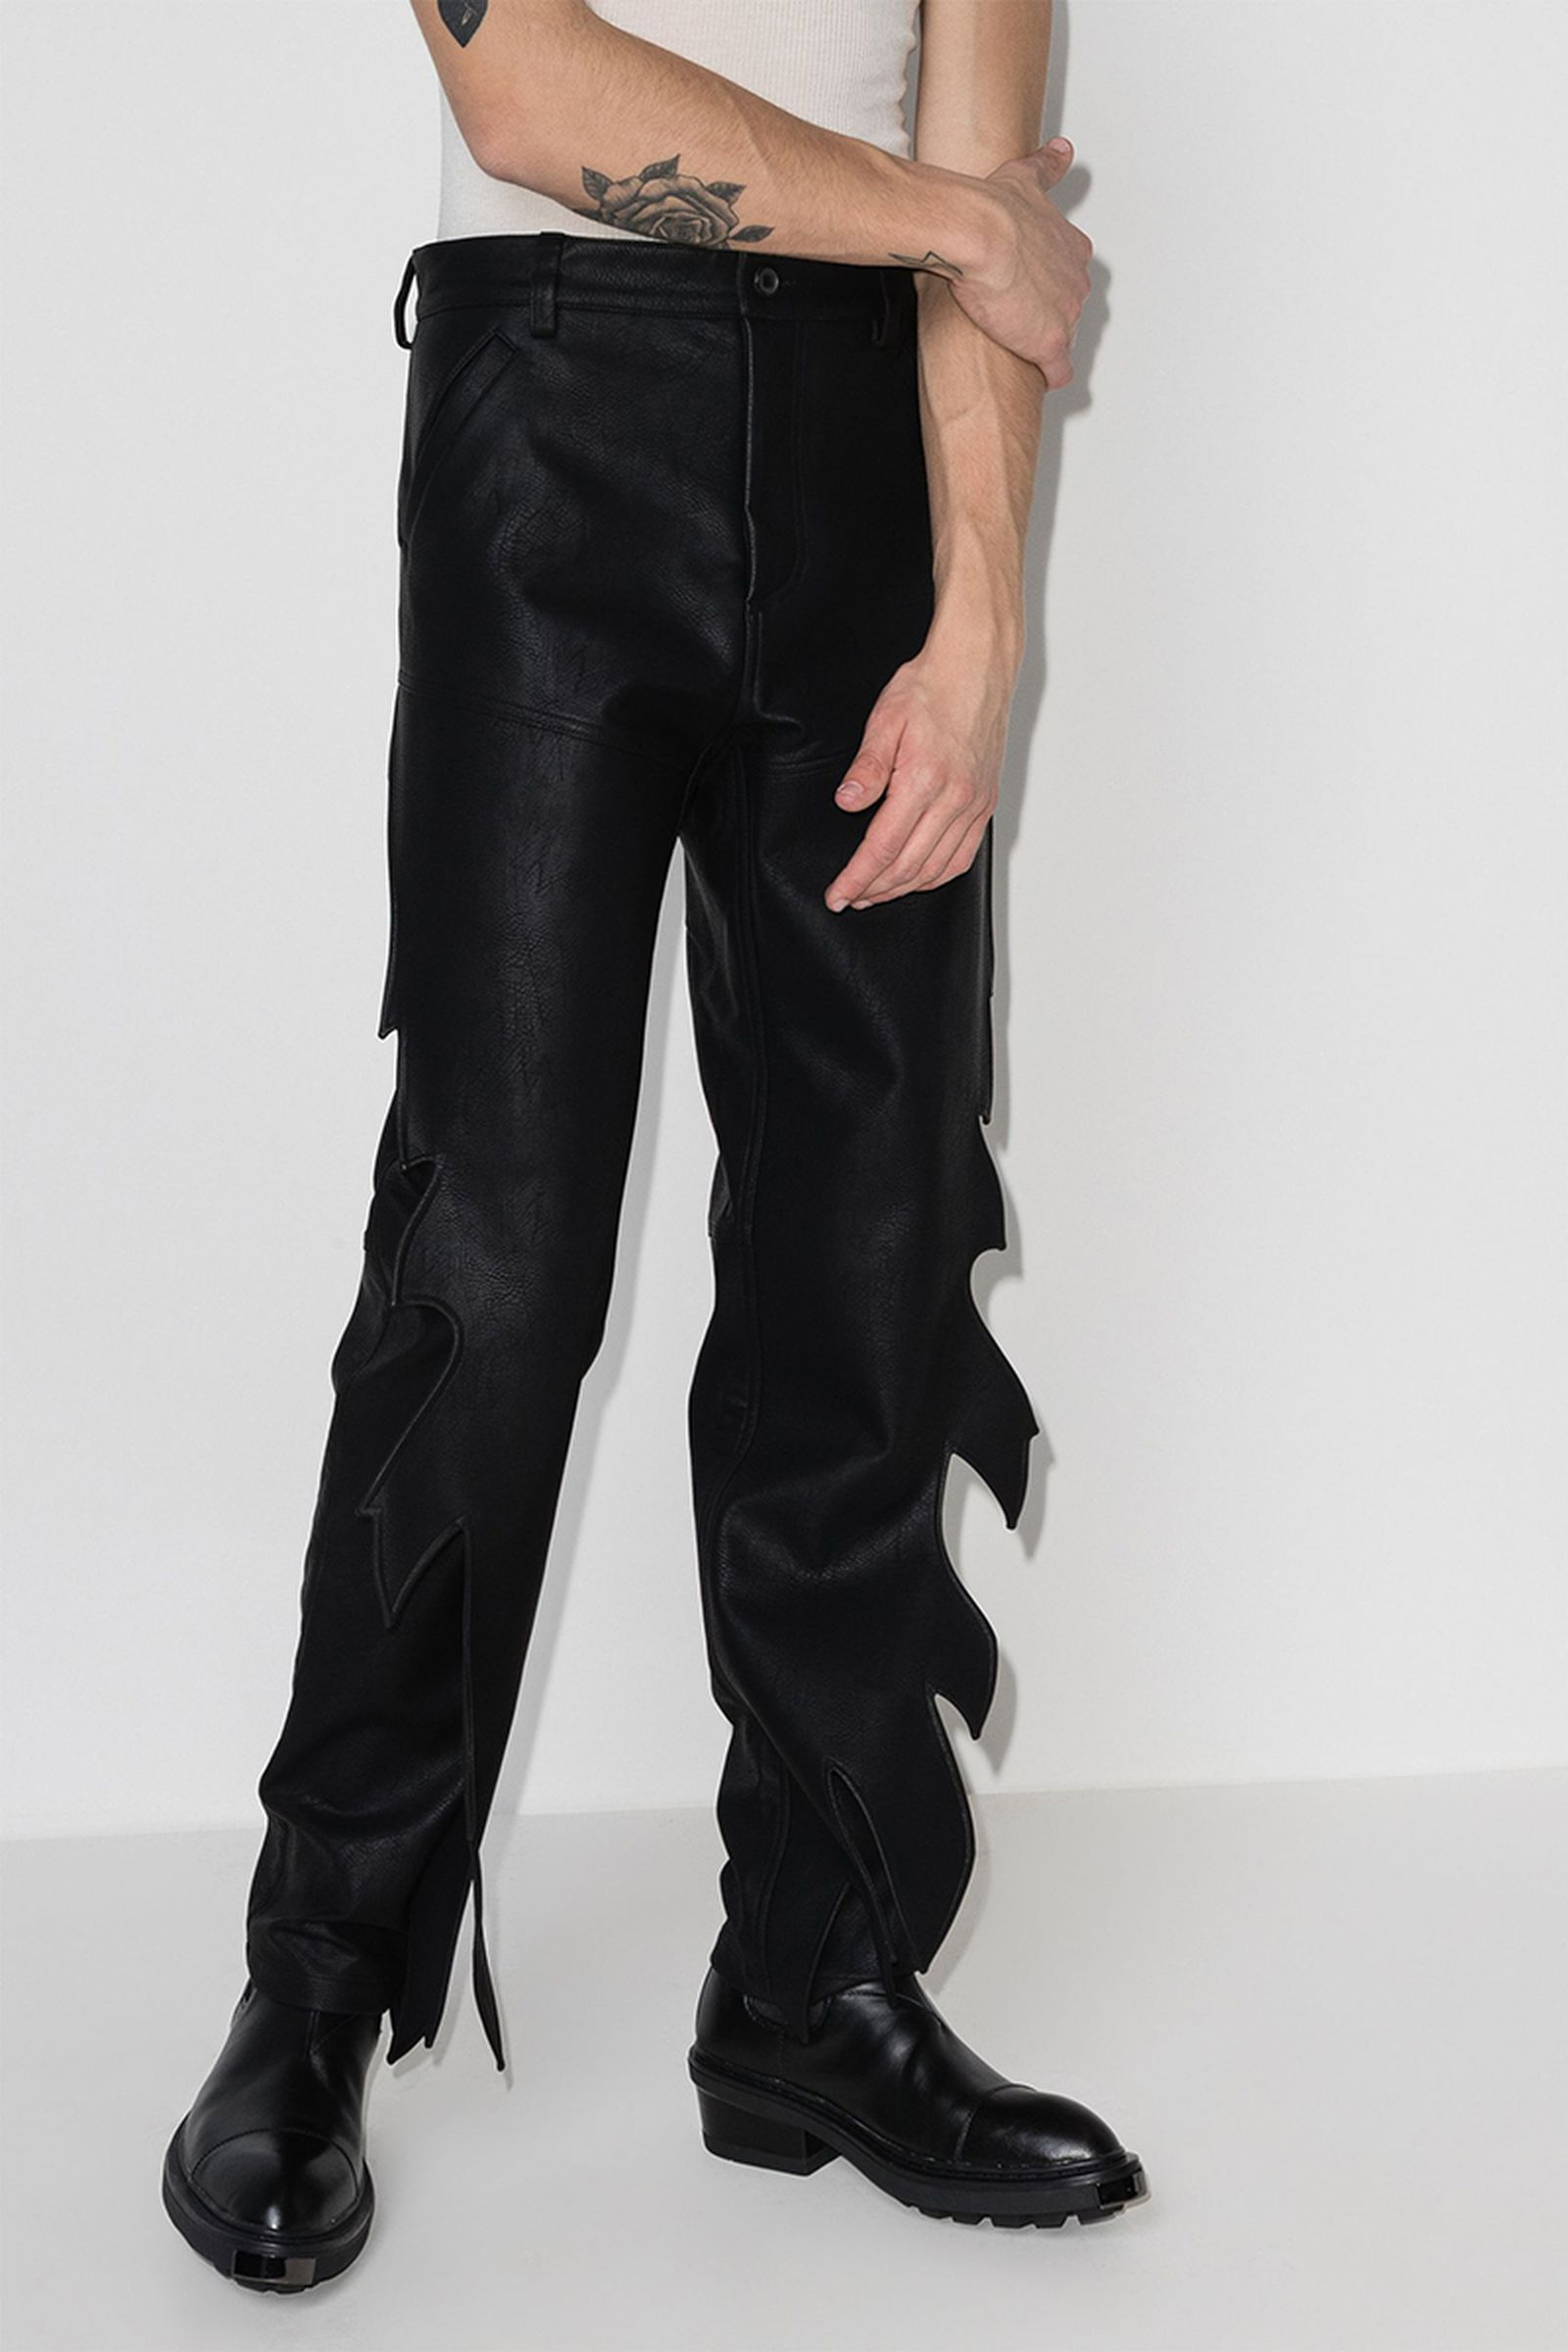 y-project-faux-leather-flame-trousers- (5)